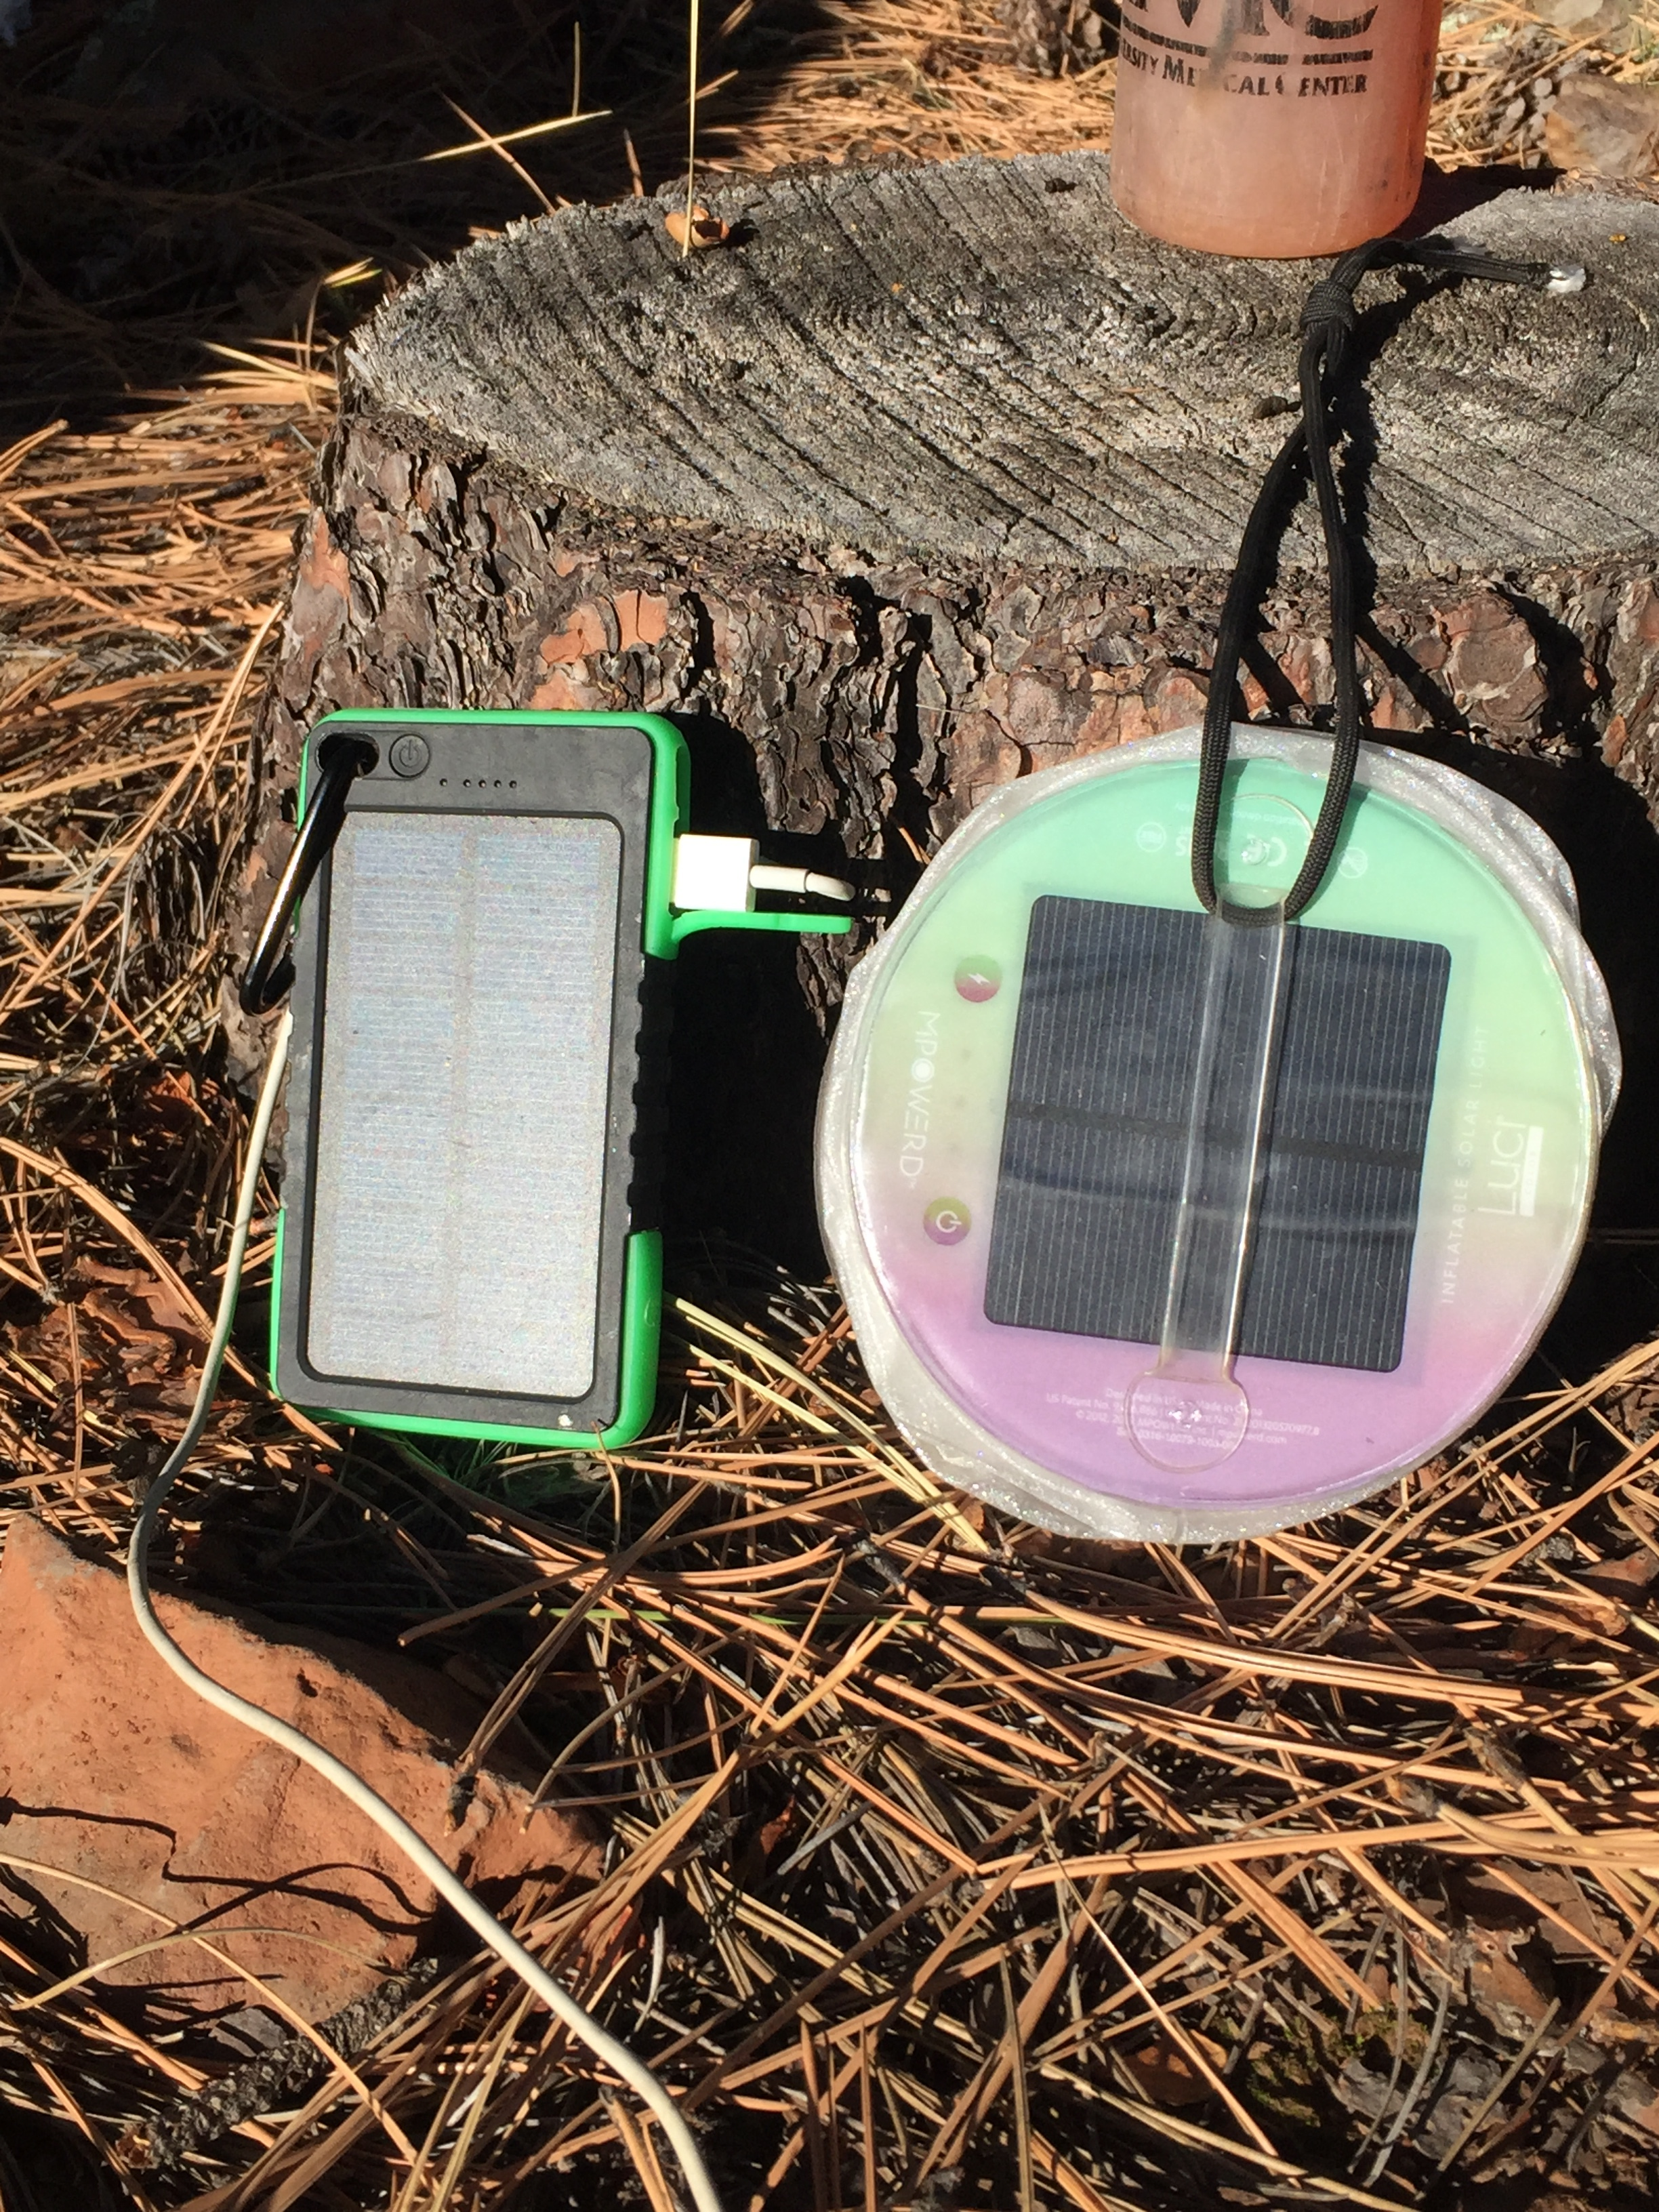 Last but not least, an up close of my solar power soaking up the sun. On the right is the previously mentioned   Luci Light  . On the left is the phone charger I was carrying that fell off. (Dang it!) It can be charged from a plug at home to carry extra power for your phone and is then supposed to recharge from the sun. I can attest to the fact that is will indeed charge from the wall, and hold a charge to refuel your phone. Because it fell off and got lost, I can't attest to how well the solar part works. If you want to try one yourself, it was very inexpensive. I had one similar to   THIS  . I'm hoping for a new one for Christmas and once I test out the solar functioning, I'll let you know. For the price though, even if the solar part isn't perfect, it is worth it for the bonus battery pack aspect.